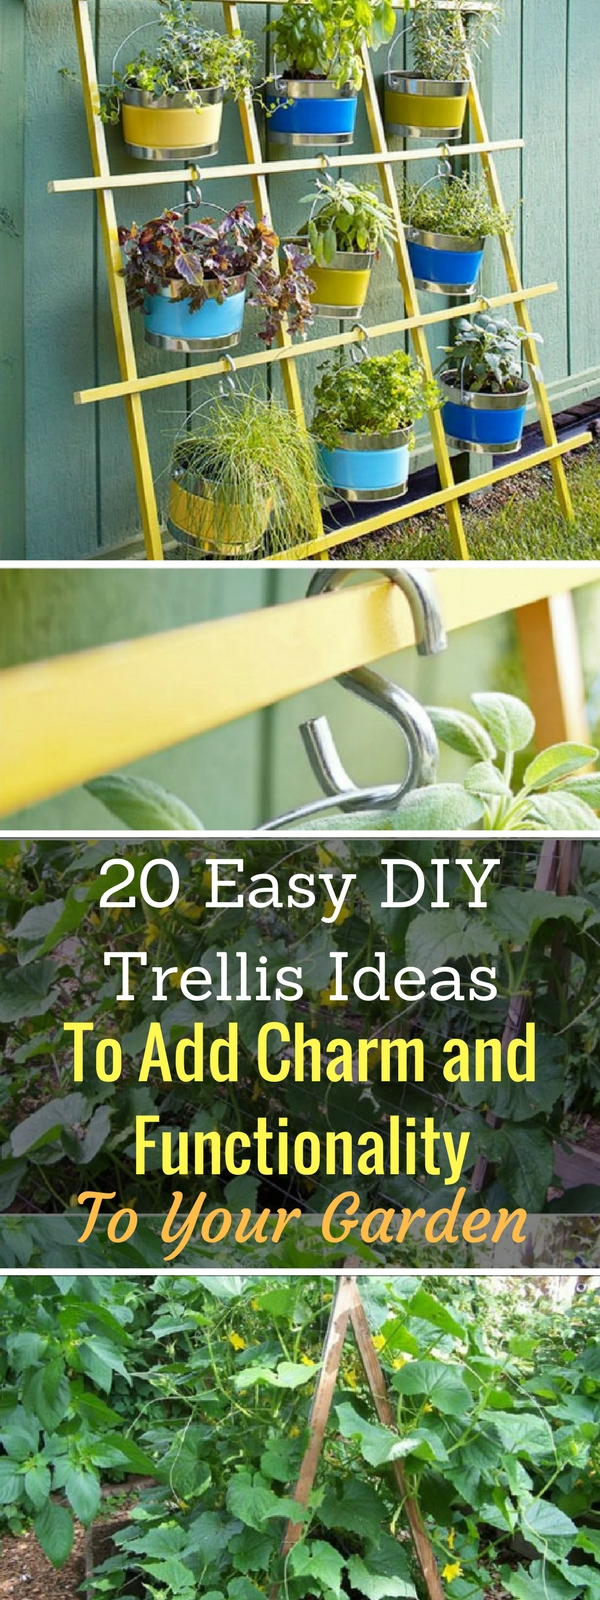 20 Easy DIY Trellis Ideas To Add Charm and Functionality To Your ...